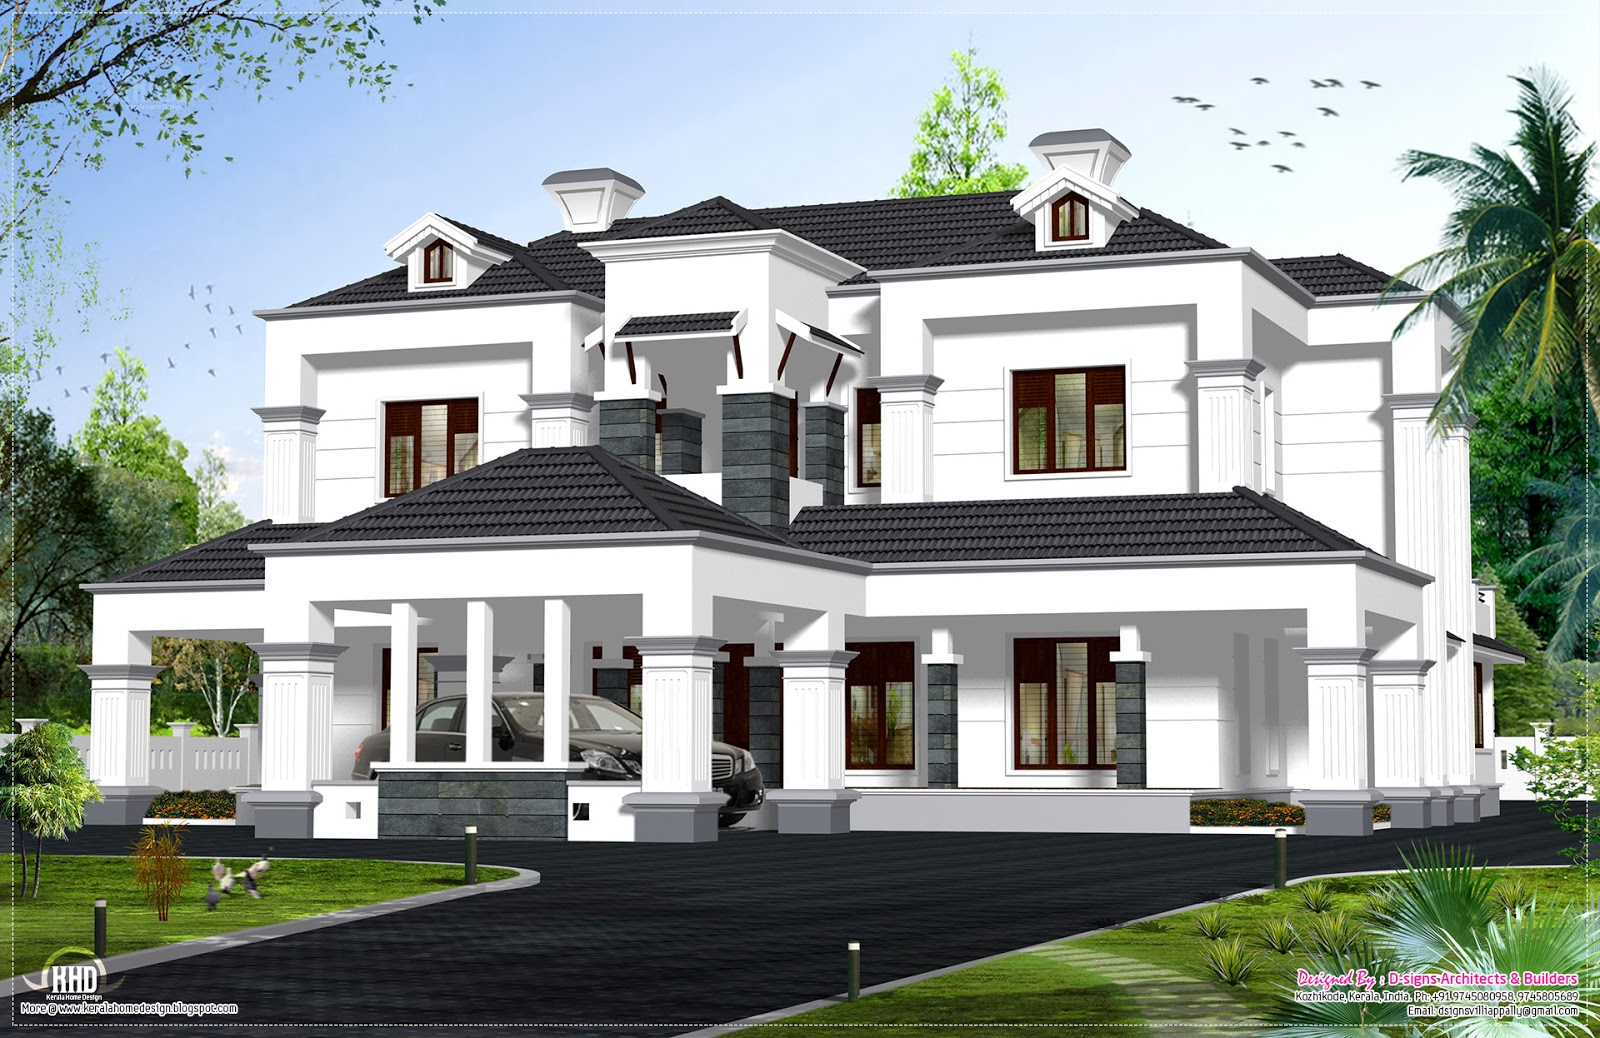 Victorian model house exterior kerala home design and for Home designs exterior styles